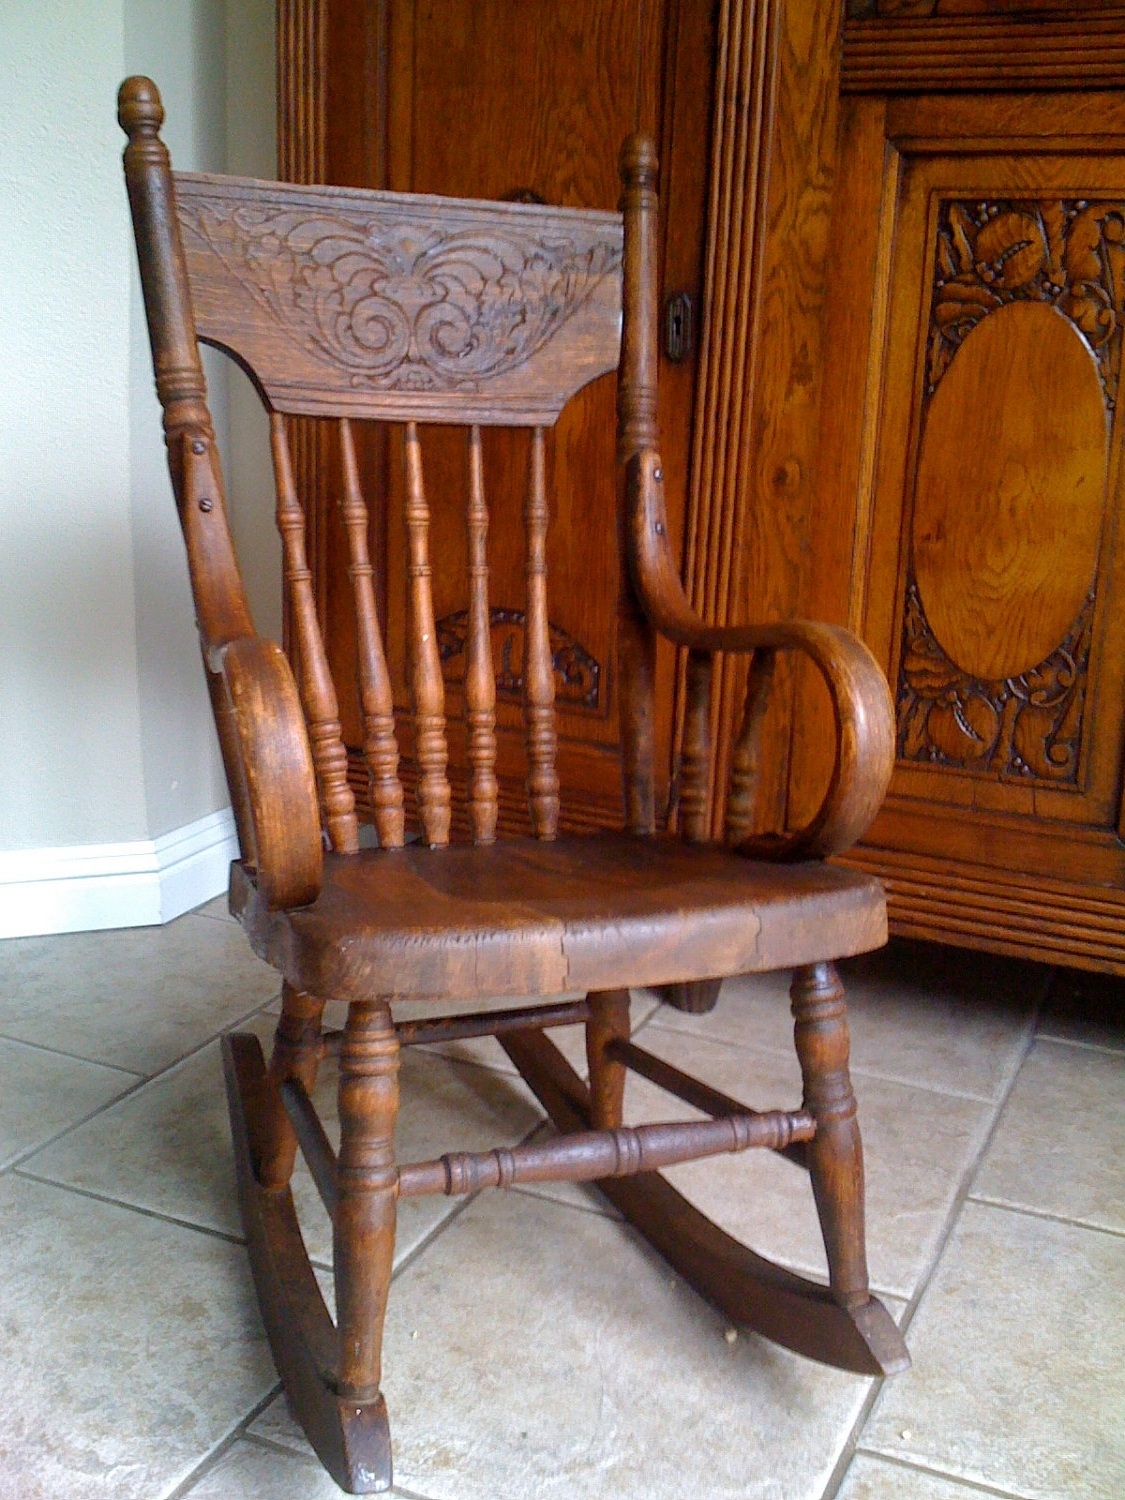 Widely Used Old Fashioned Rocking Chairs In Incredible Old Fashioned Rocking Chair Pertaining Luxury Interior (View 3 of 15)